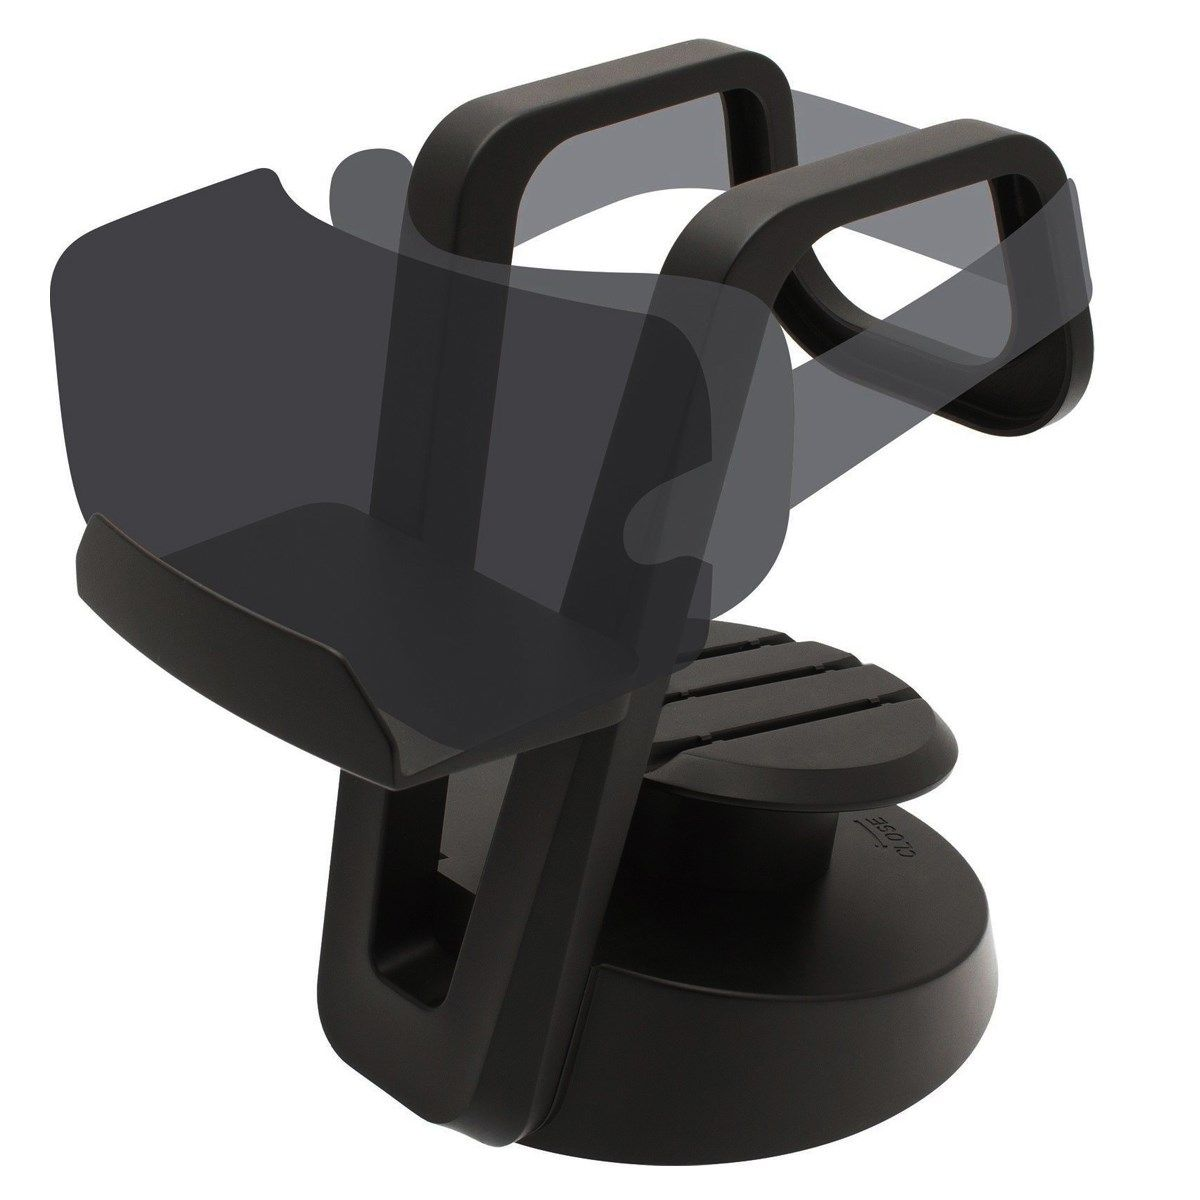 Universal VR Headset Stand VR Monut Black Display Holder Cable Organiser Rack Storage With Cable Management For VR Glasses Stand